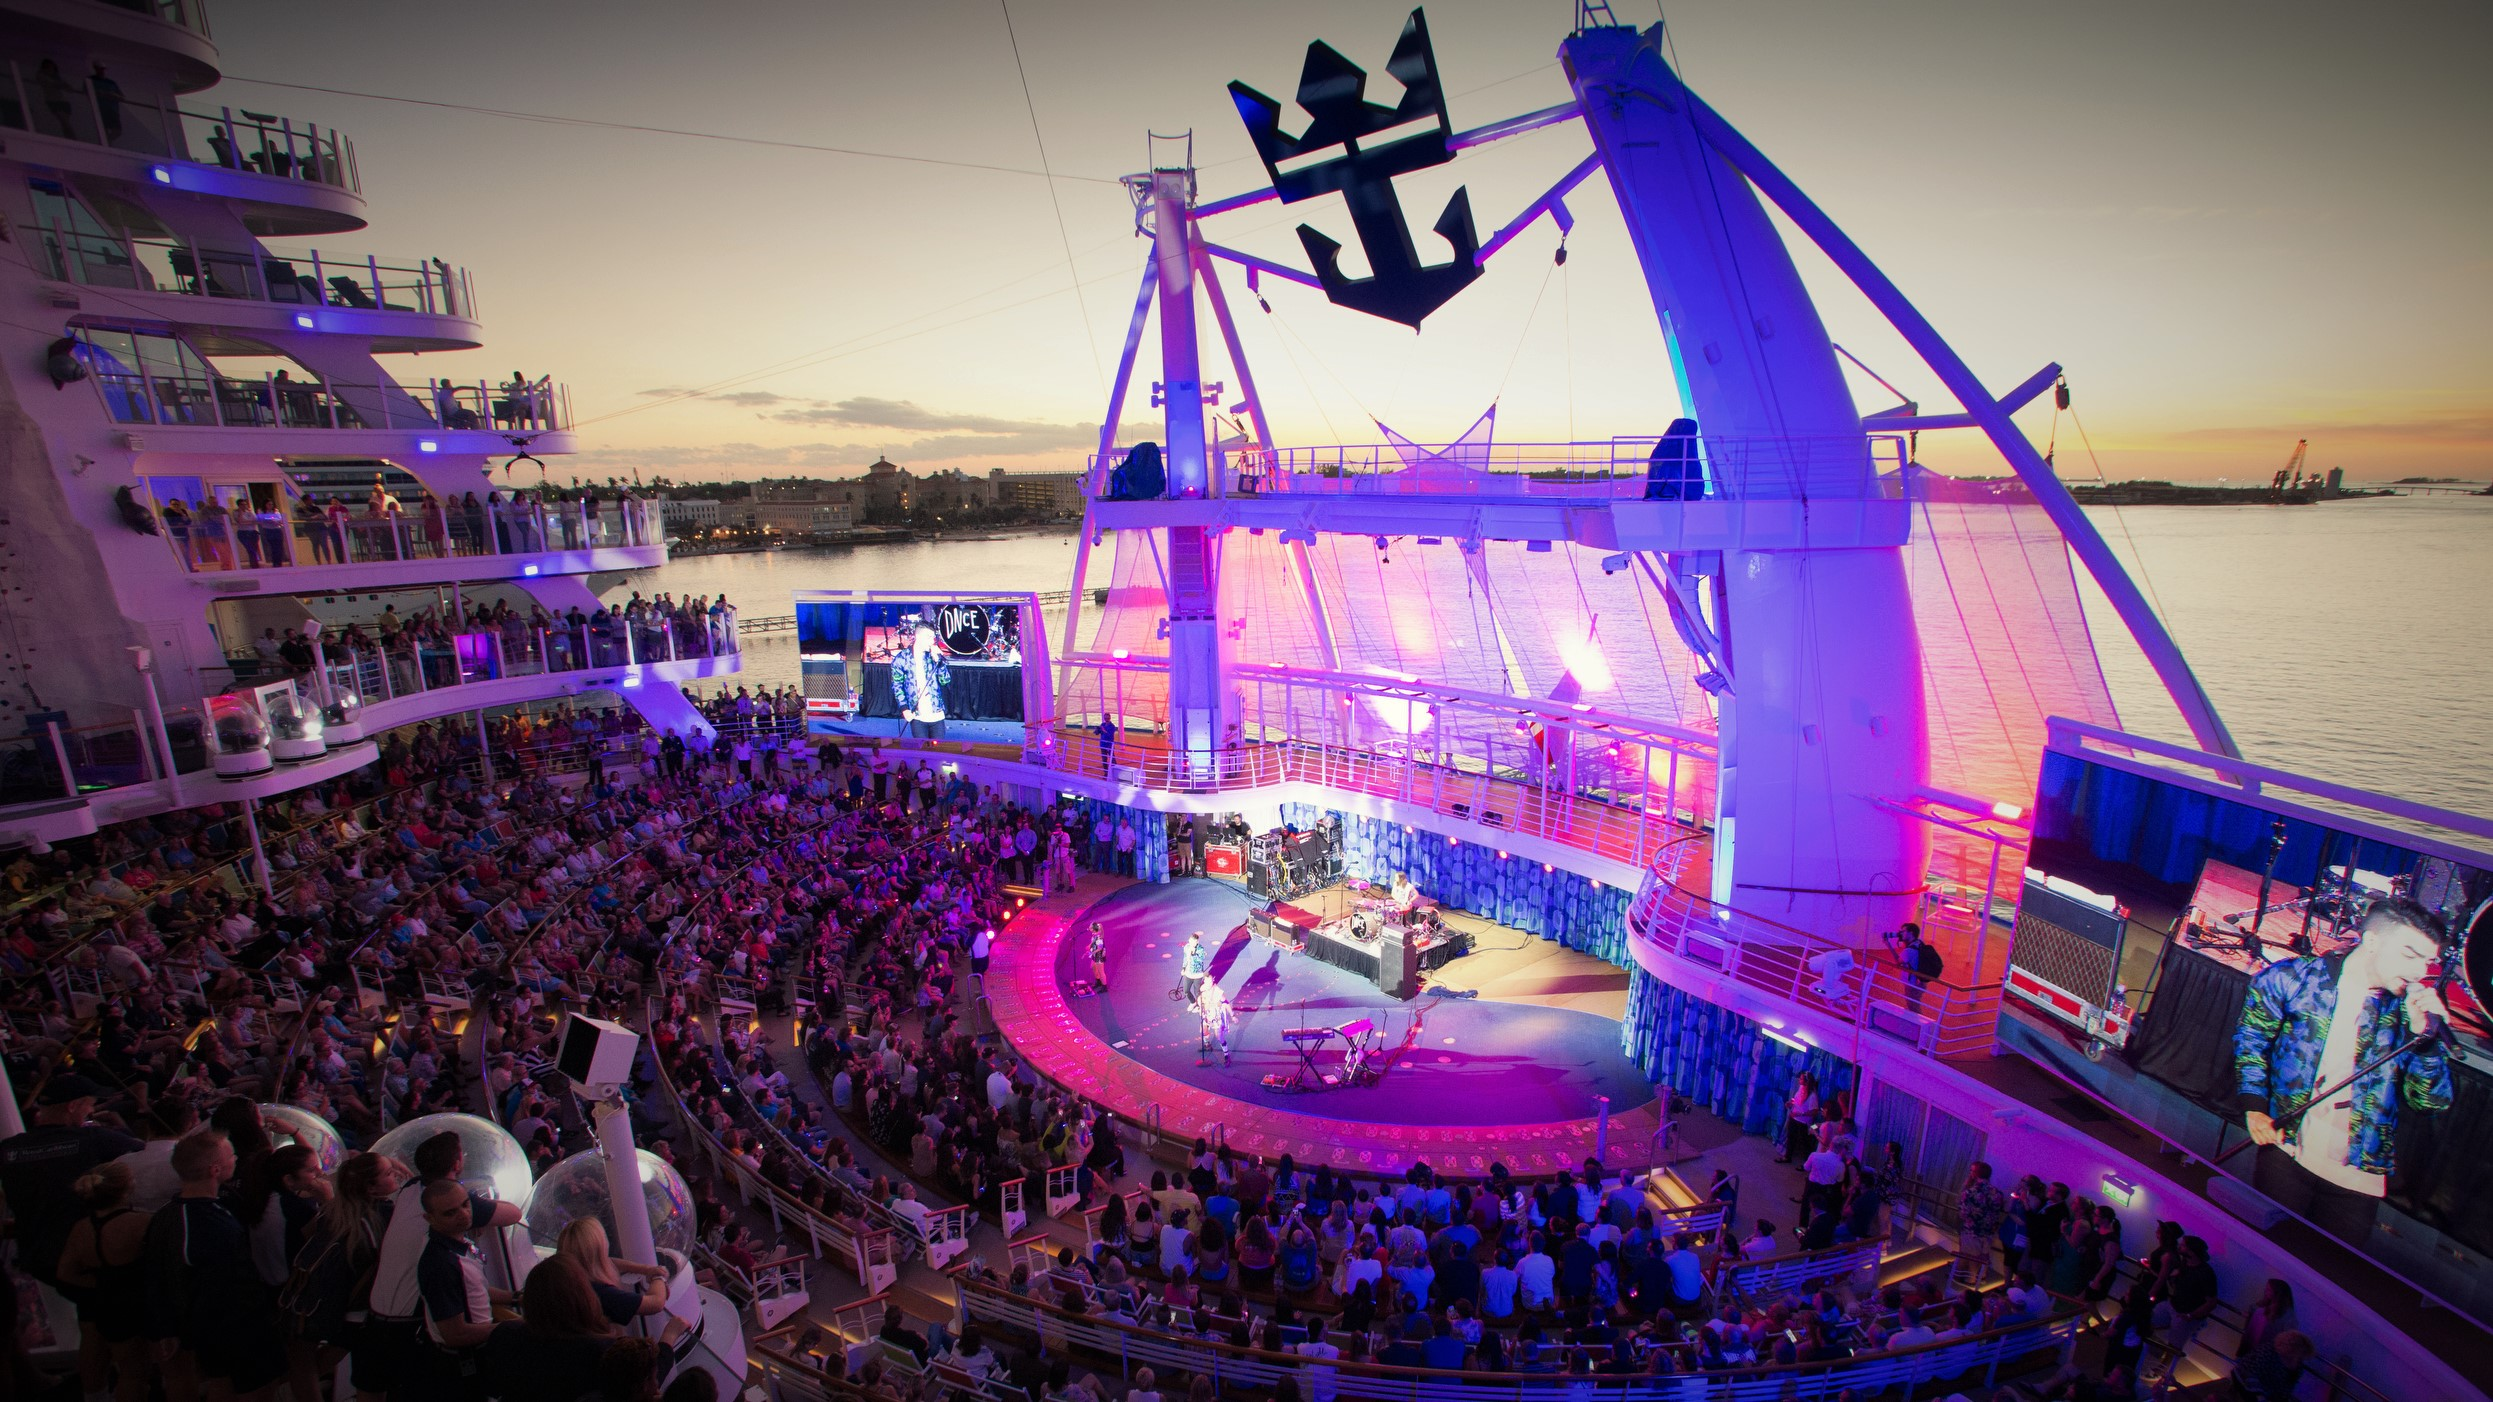 Harmony of the Seas US inaugurals. Multi-platinum selling band DNCE perform on board the world's largest cruise ship, Royal Caribbean's new Harmony of the Seas.